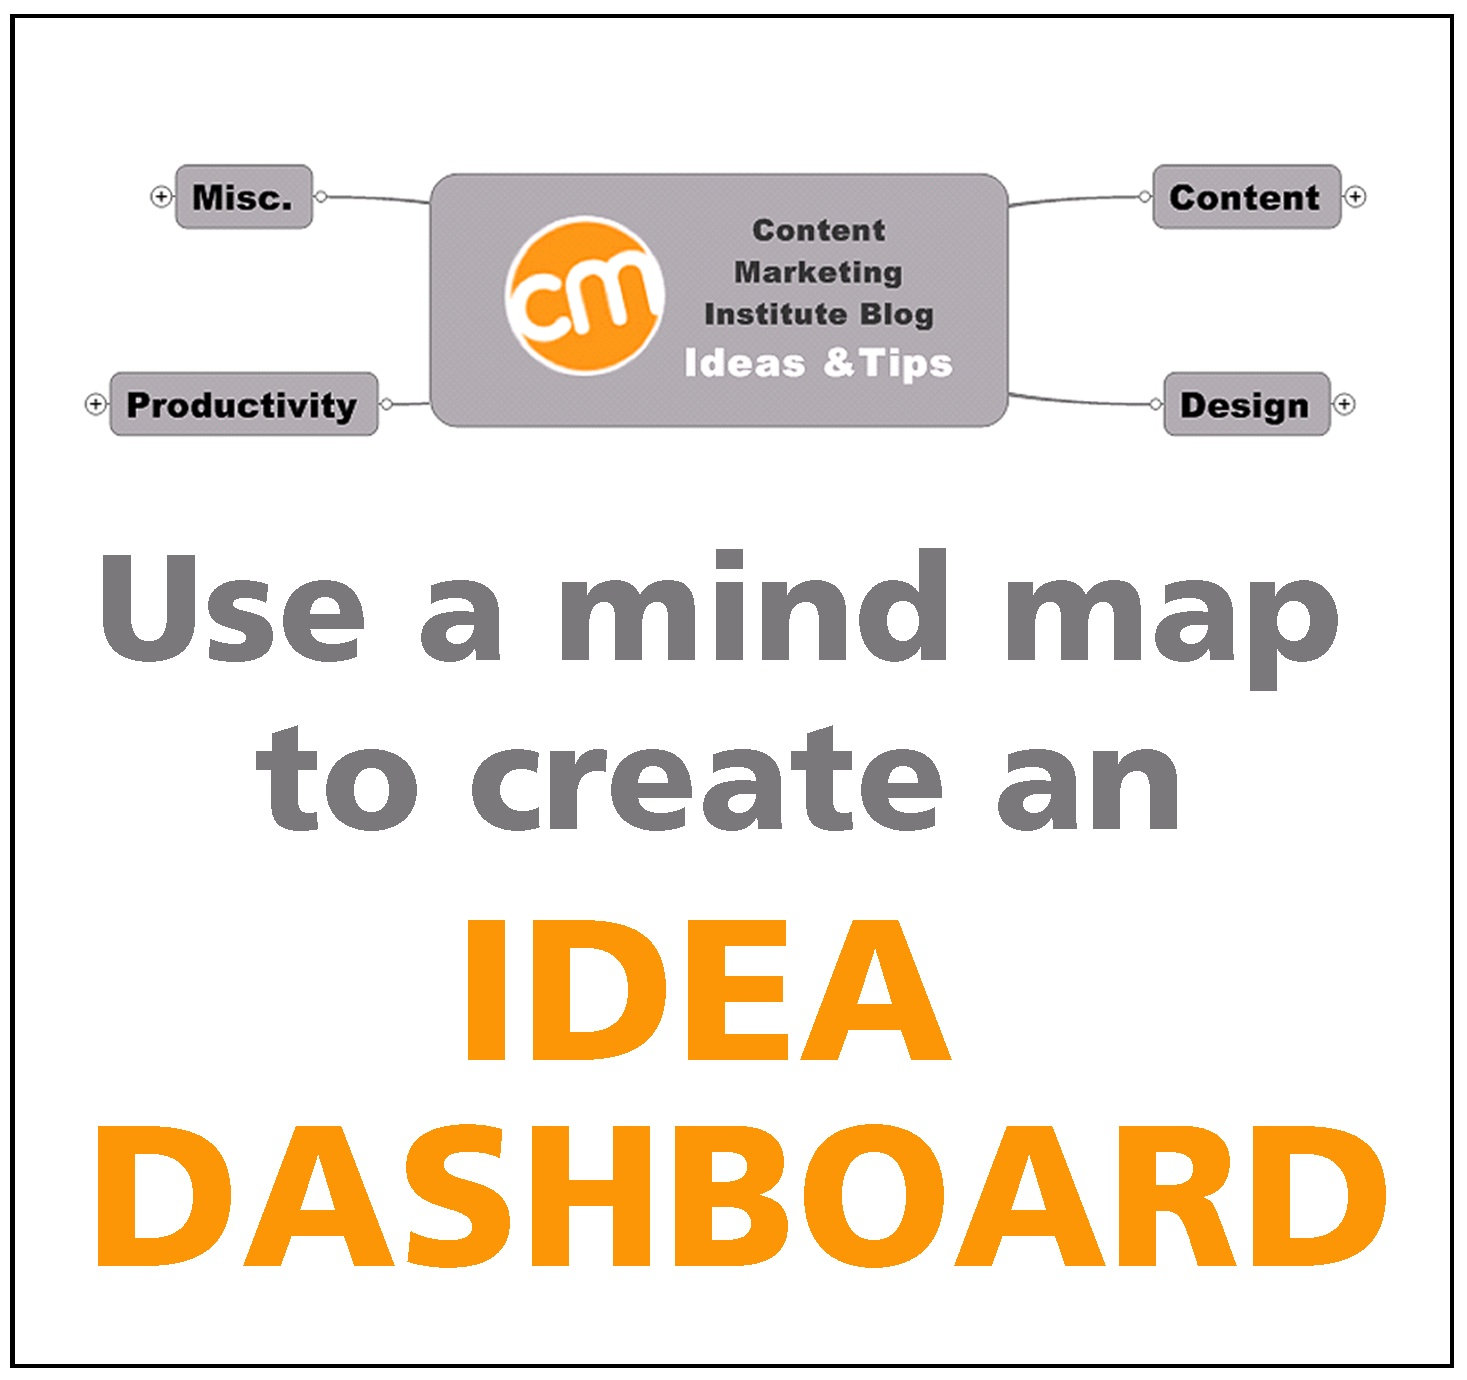 content ideas dashboard for